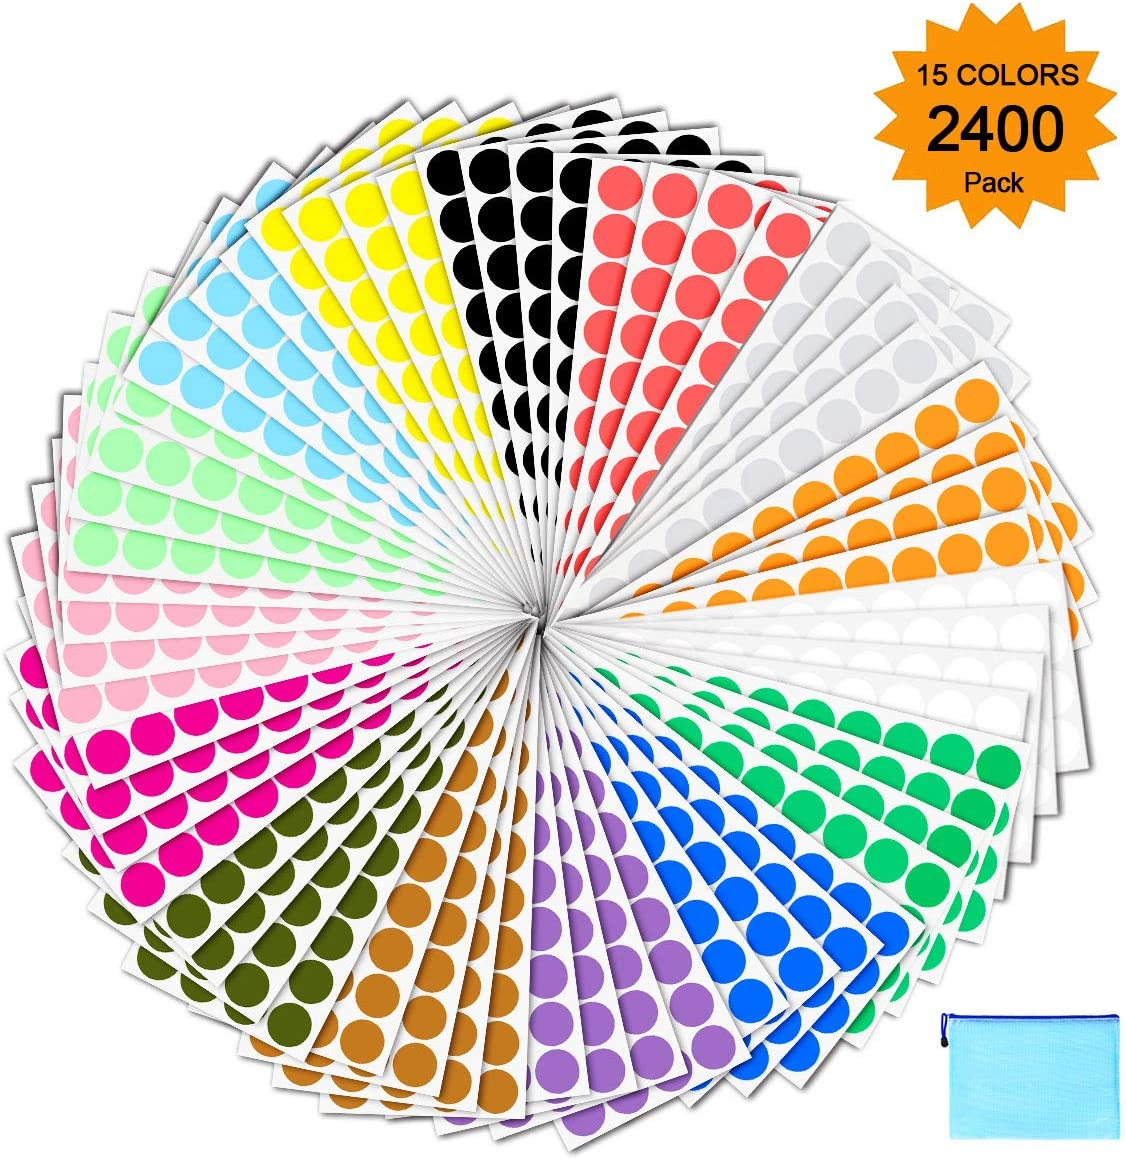 "Pack of 2400 3/4"" Round Color Coding Circle Dot Sticker Labels - 15 Assorted Colors, Bonus Zipper File Bag Included for Easy Storage"